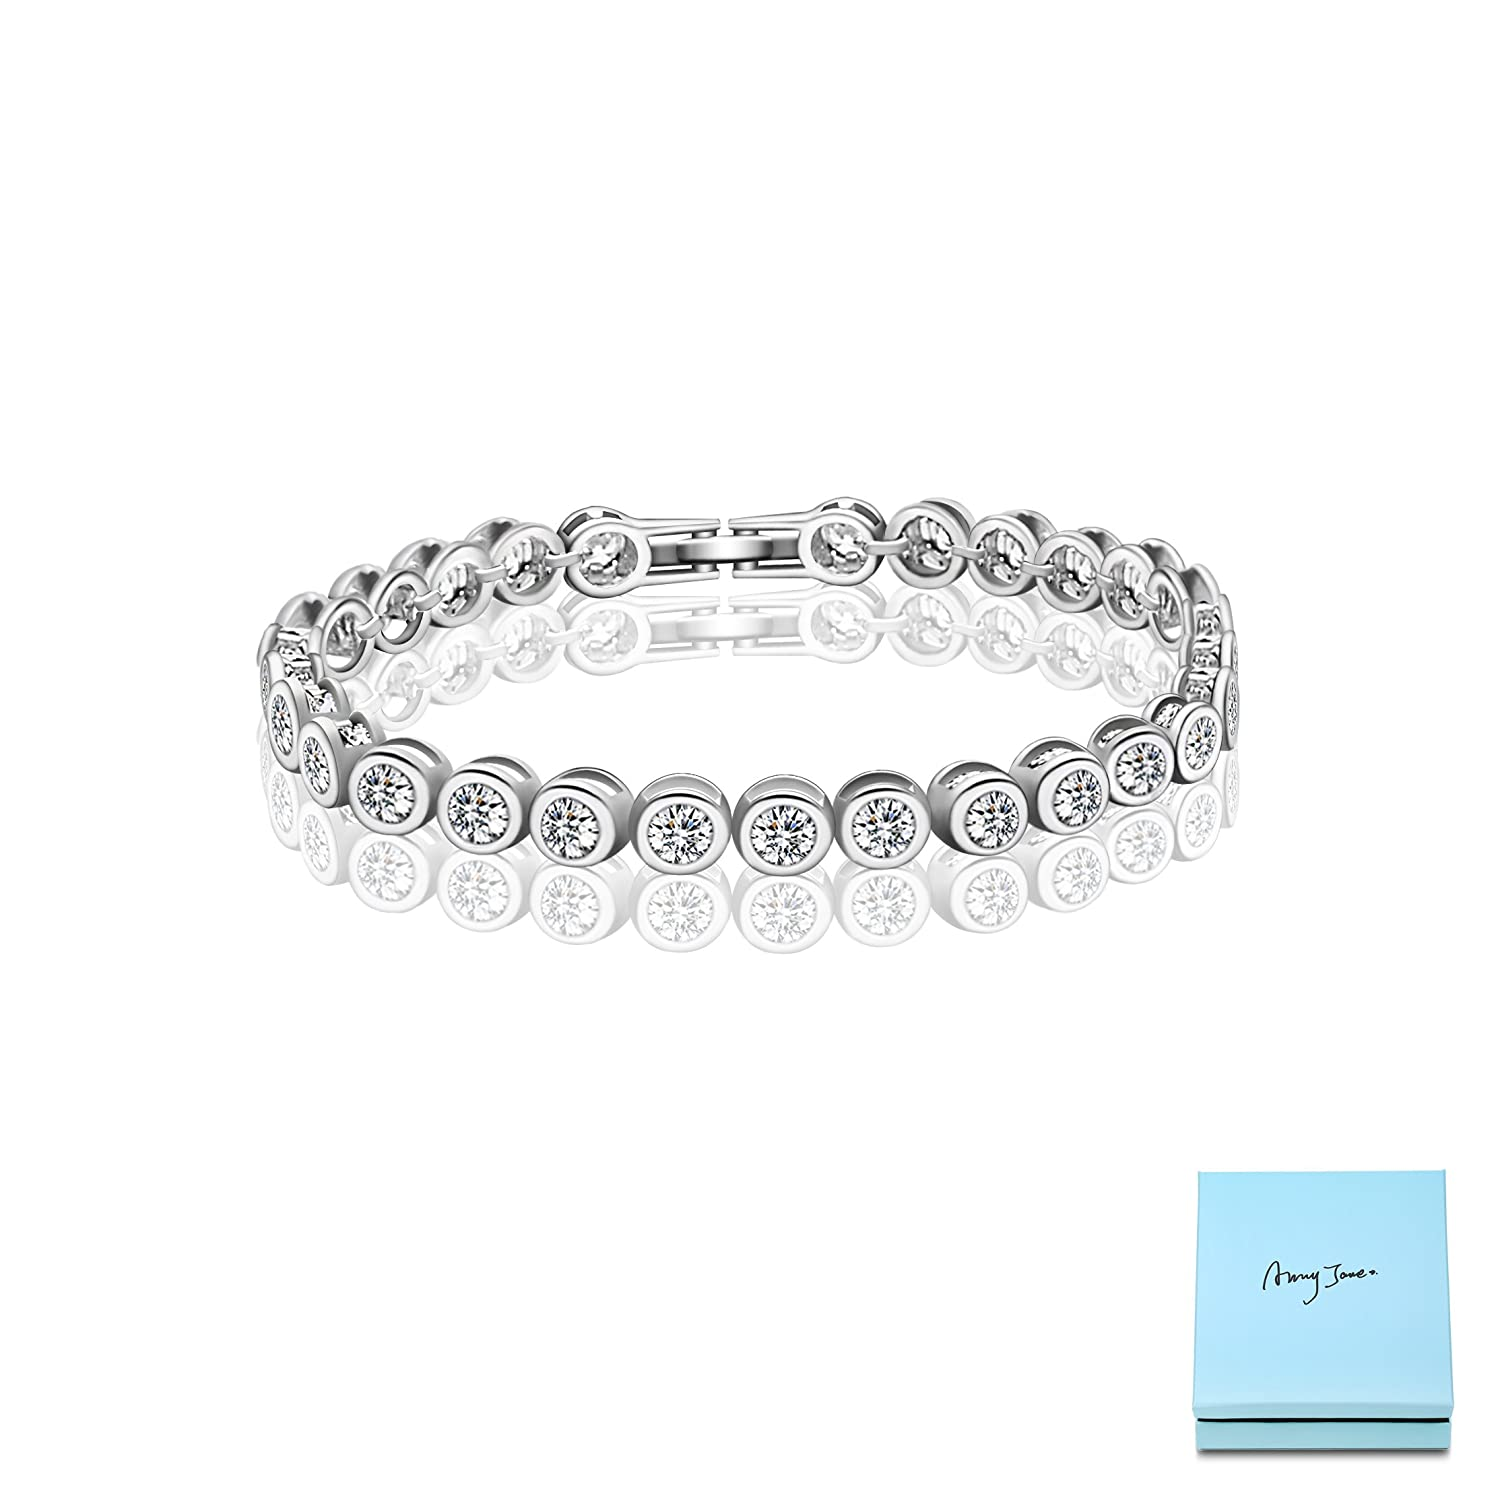 bd667246576616 AMYJANE CZ Diamond Bracelets for Women - 18k White Gold Plated Sterling  Silver Swarovski Crystal Cubic Zirconia Tennis Bracelet Wedding Bridal  Jewelry ...